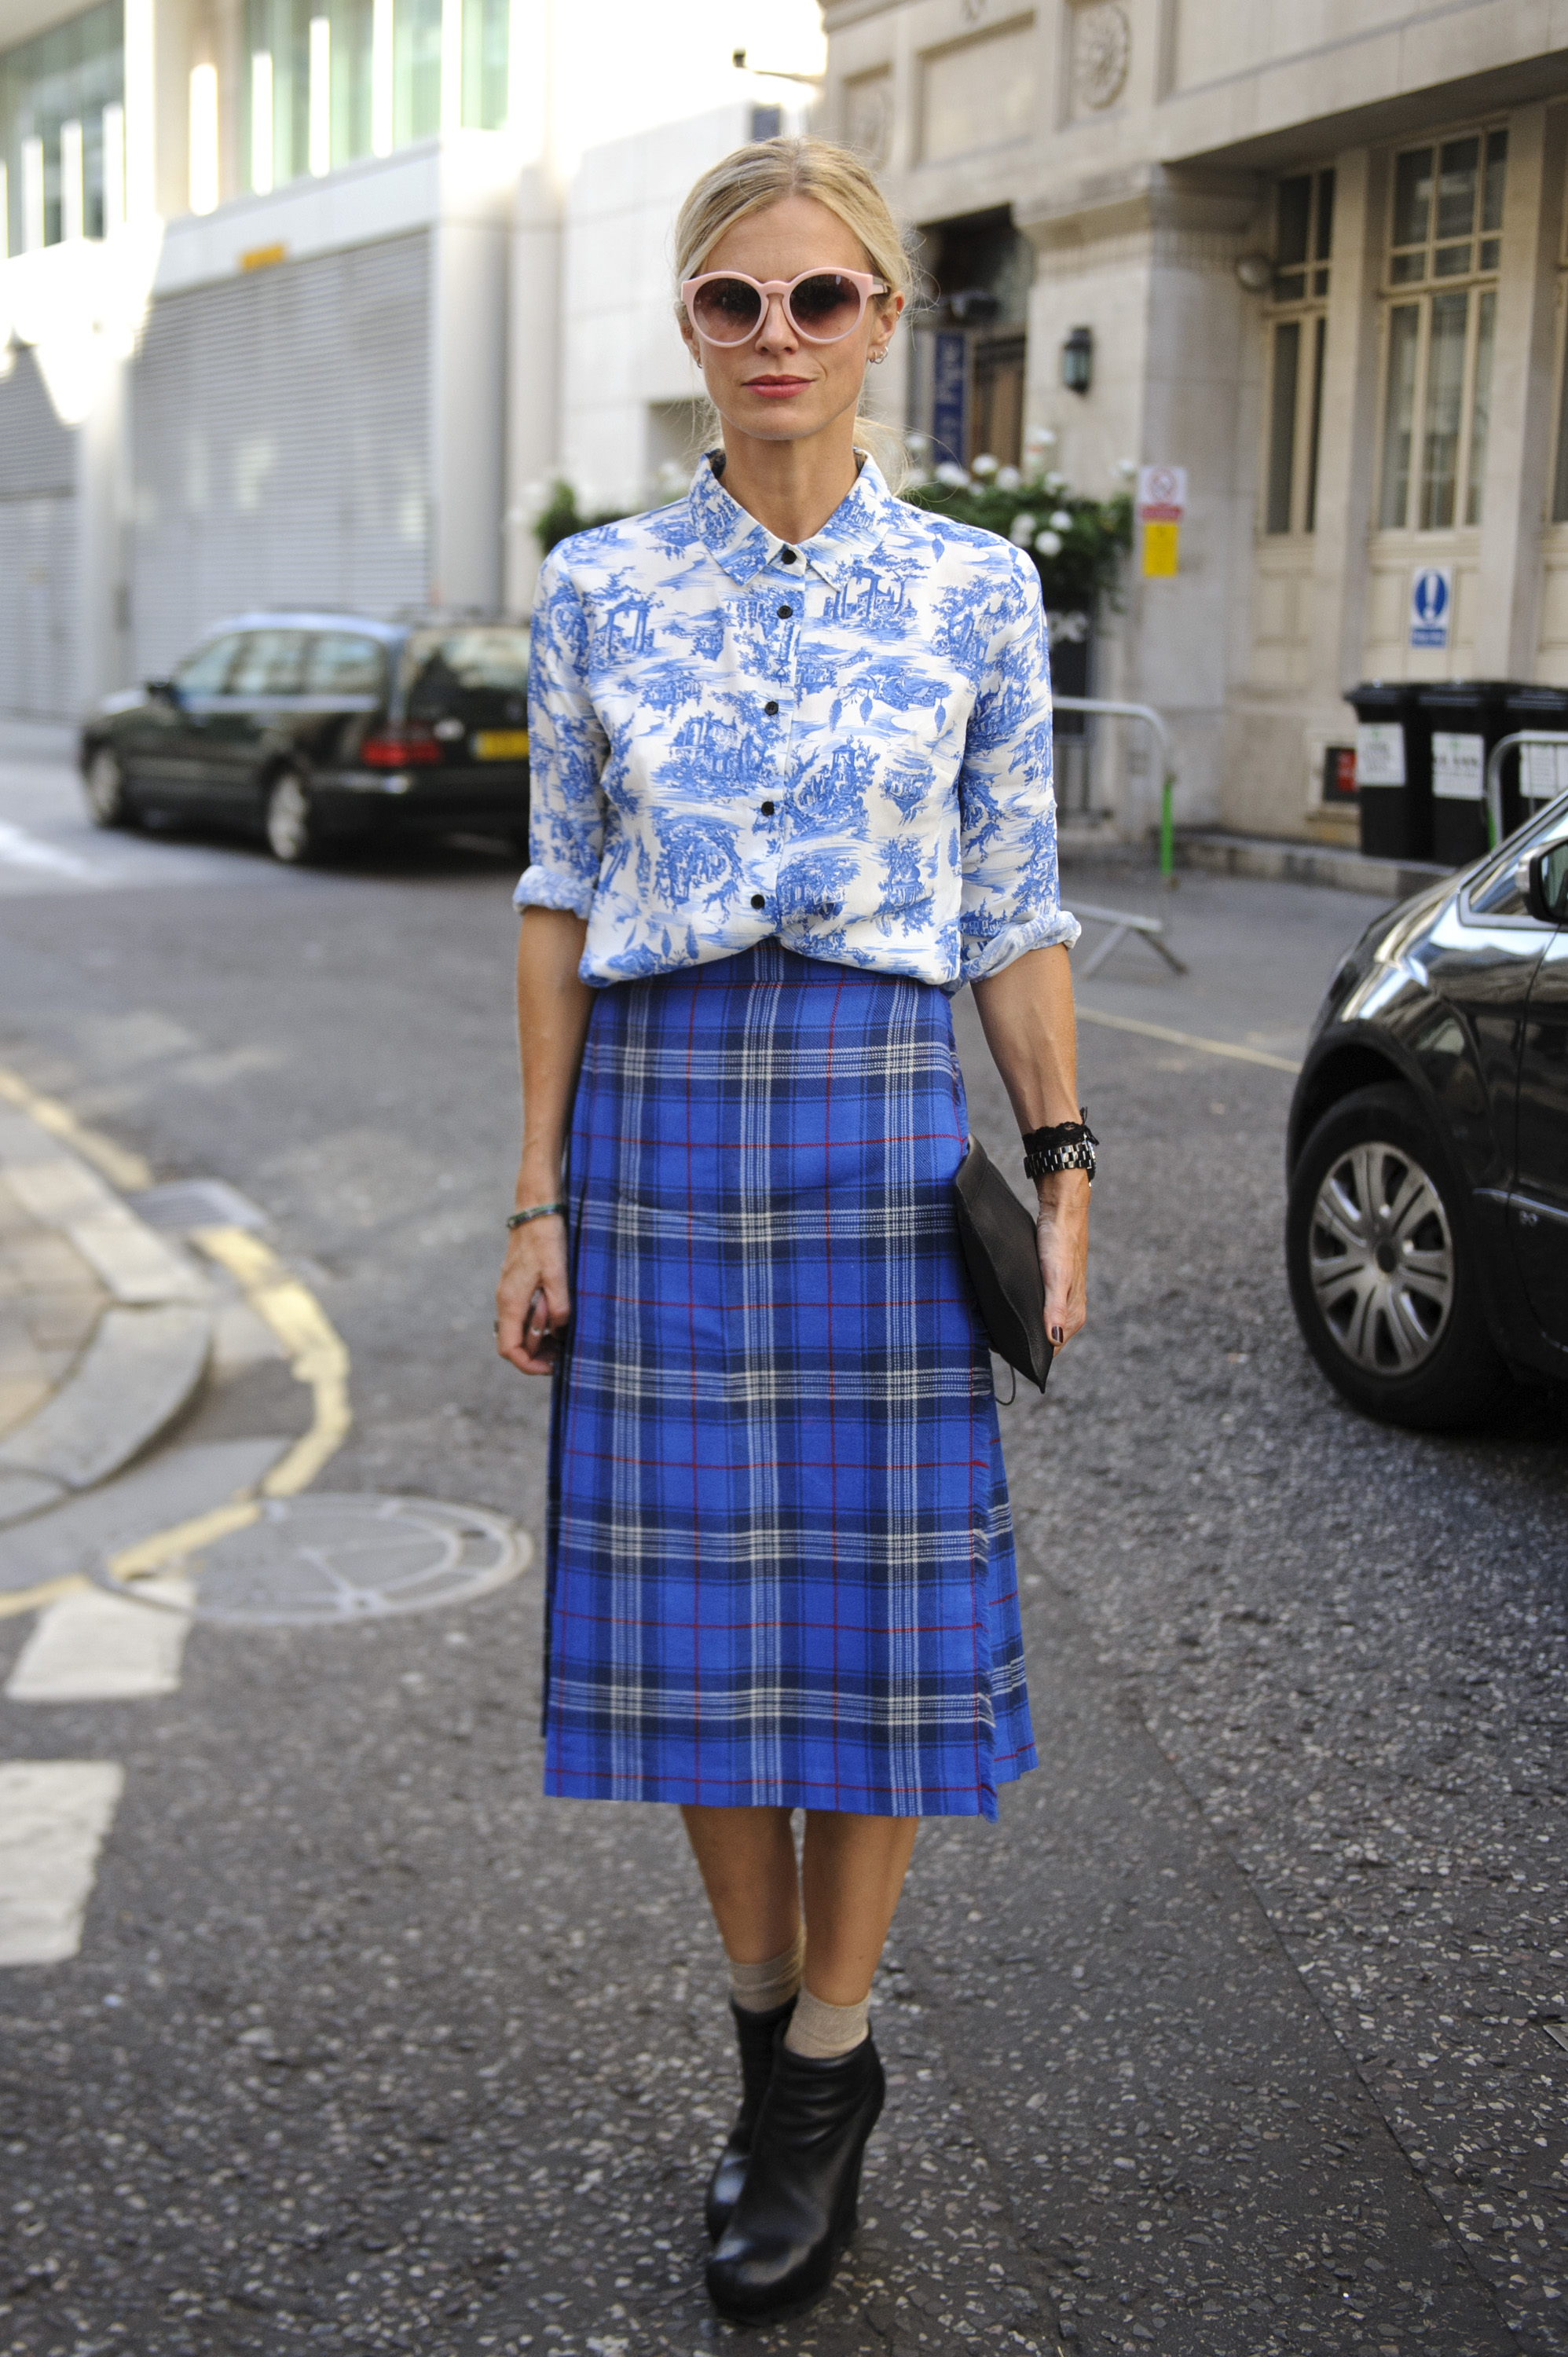 Laura Bailey is a master of mixed prints — her floral button-up and tartan plaid midi skirt look like a match made in fashion heaven.